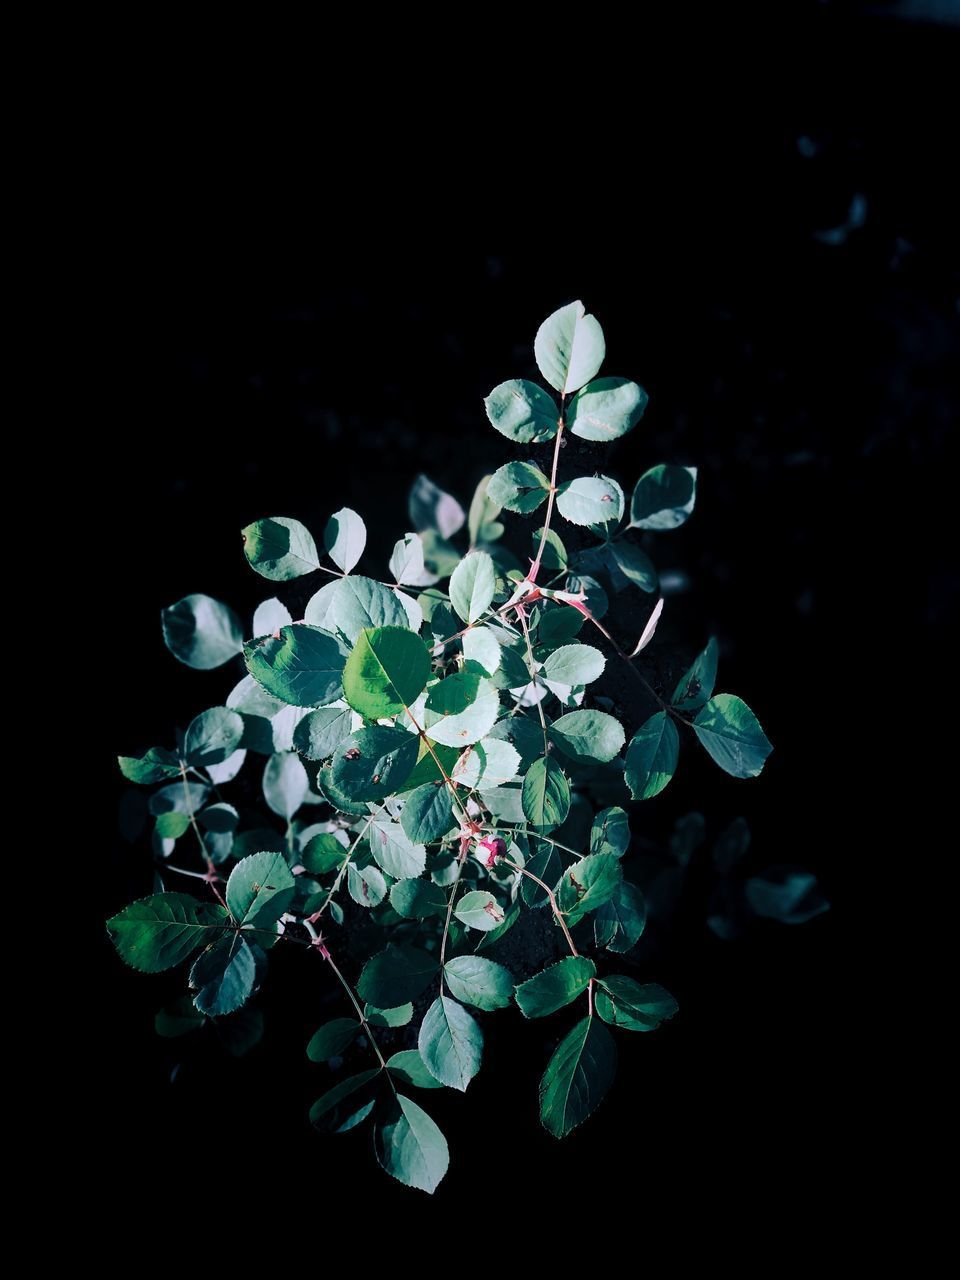 leaf, plant part, growth, plant, green color, nature, beauty in nature, close-up, no people, freshness, night, vulnerability, fragility, high angle view, selective focus, studio shot, flower, outdoors, black background, clover, small